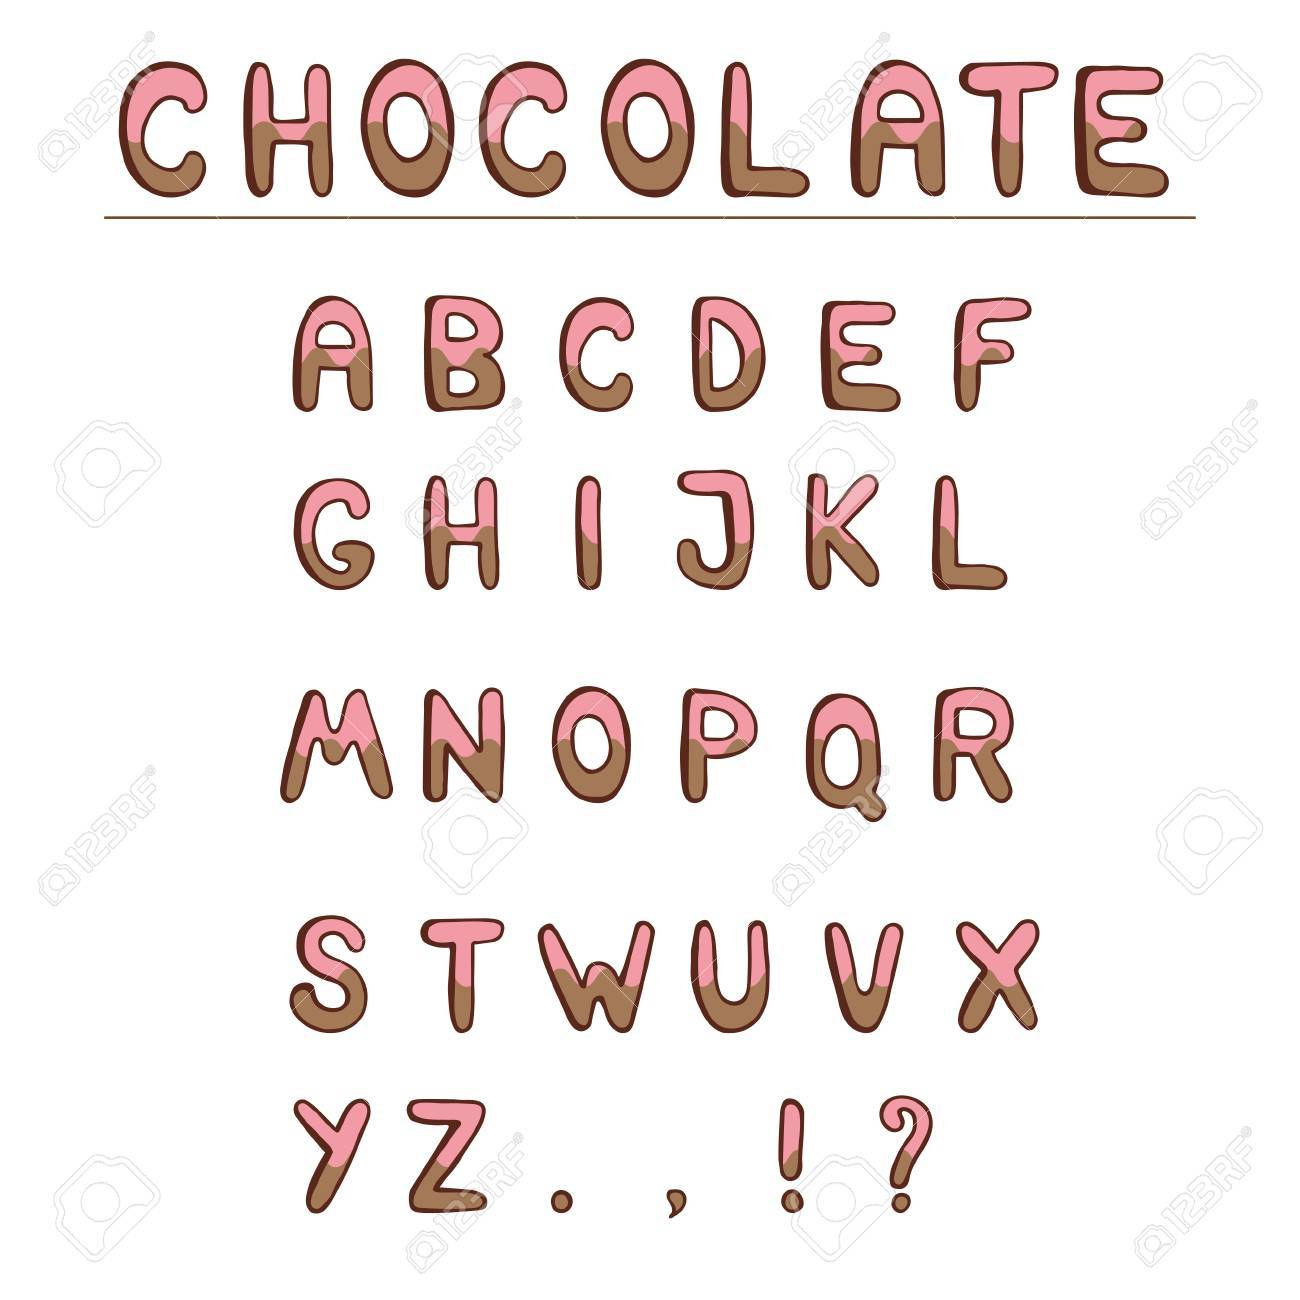 Chocolate Hand Draw Alphabet ABC For Your Projects And Design Capital Letters Isolated